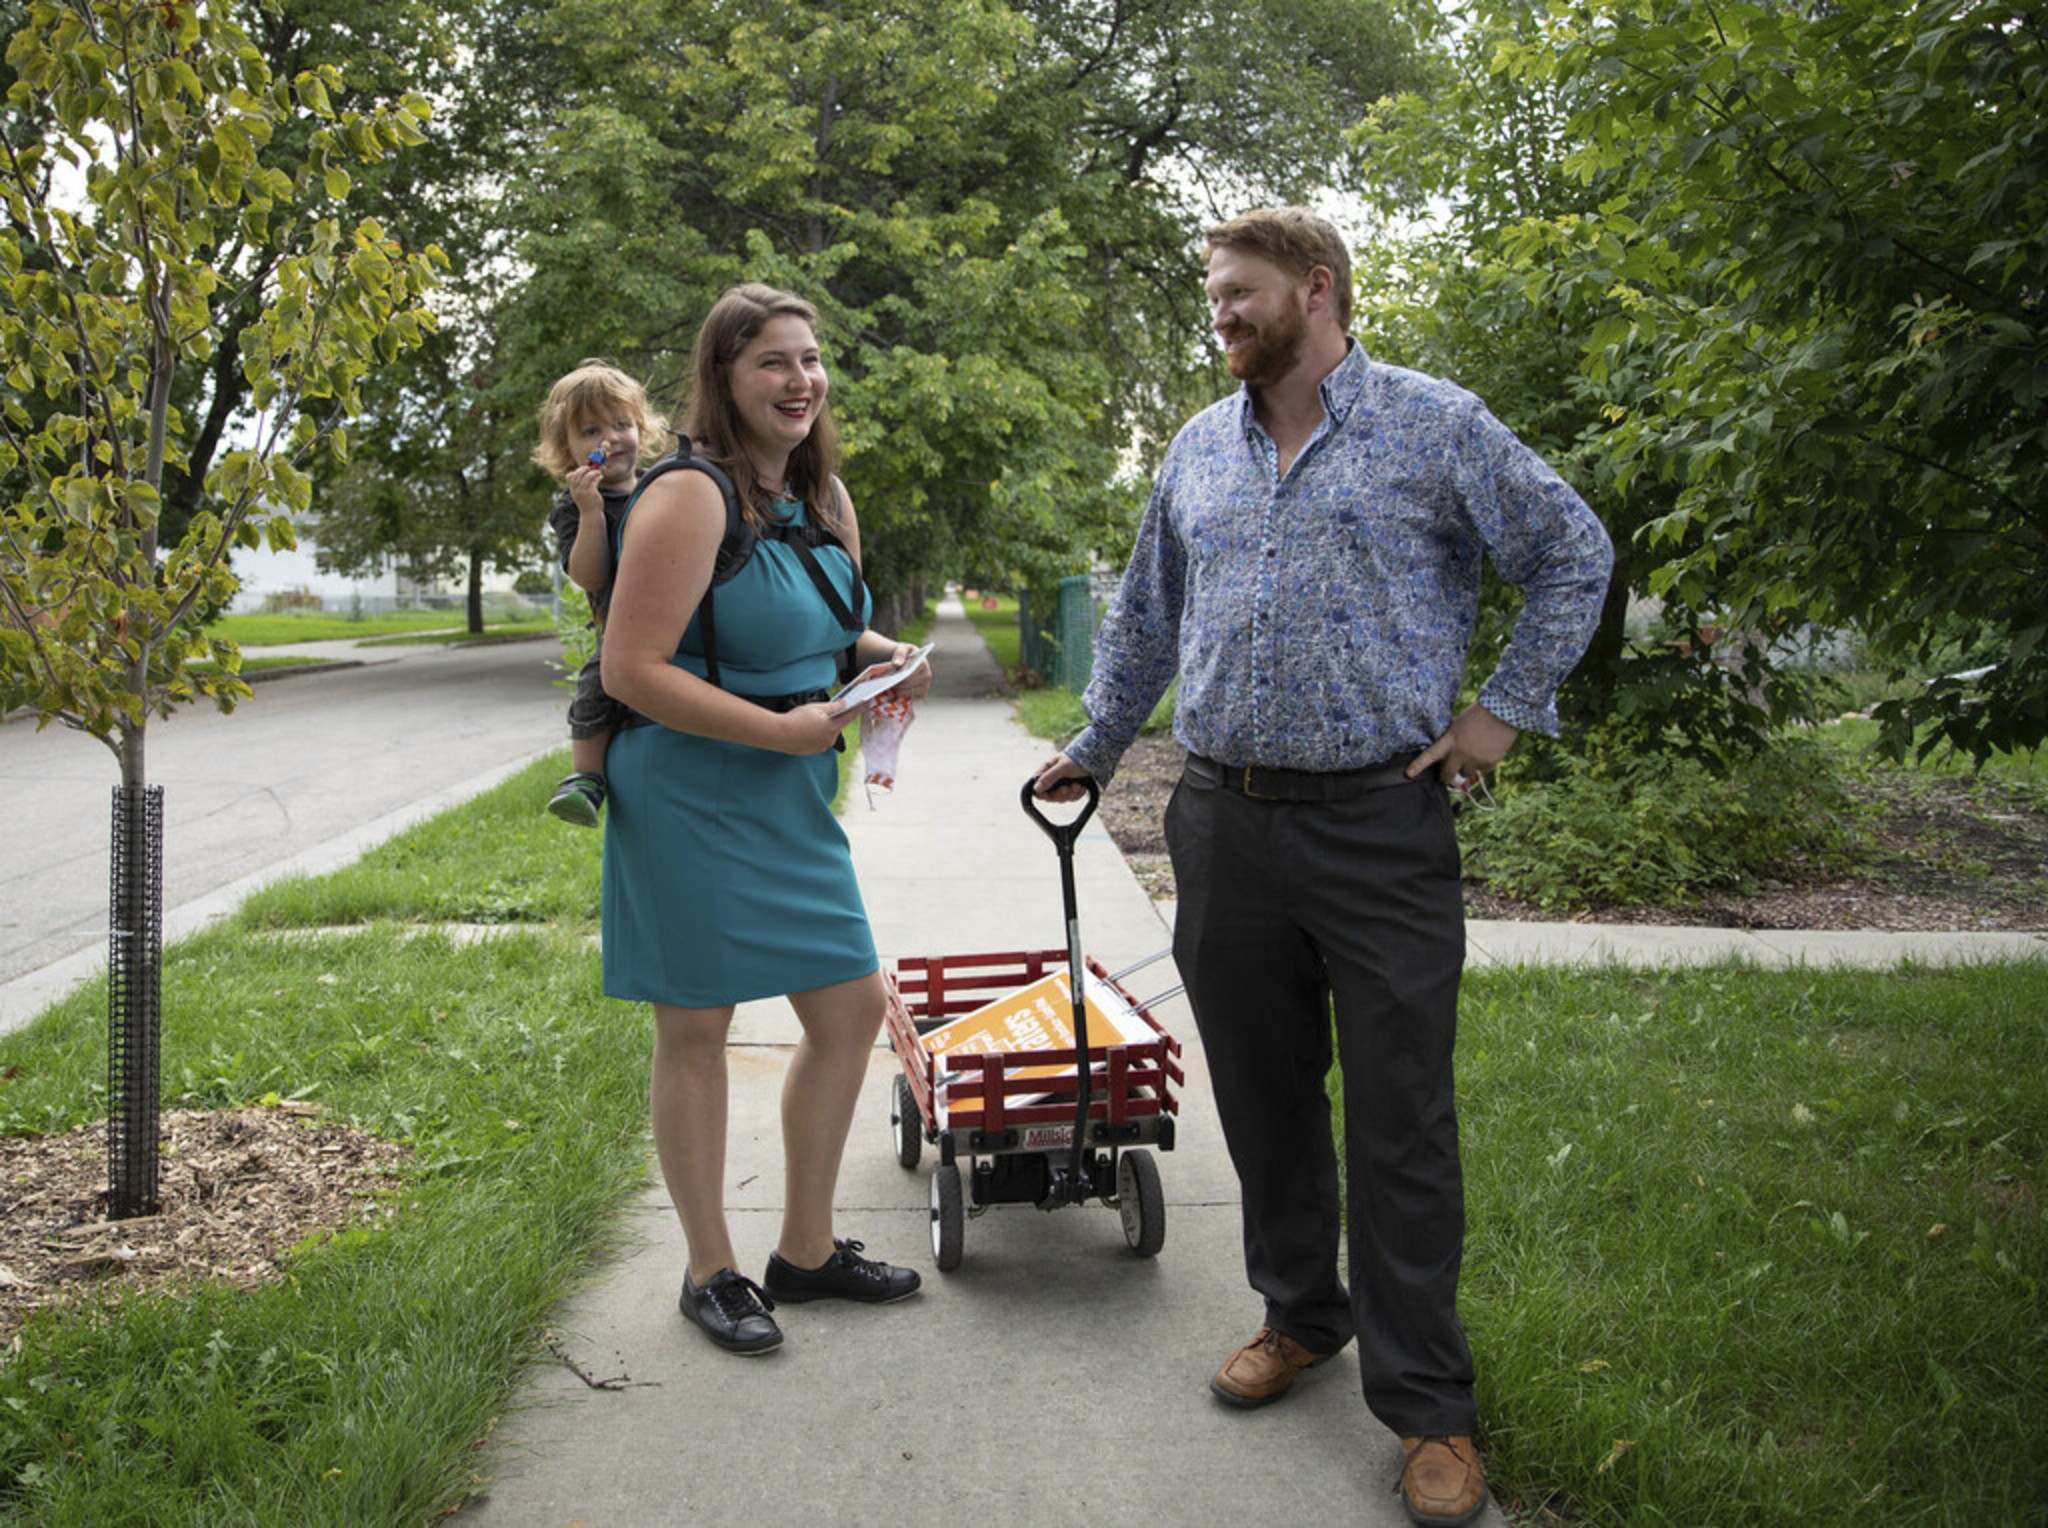 JESSICA LEE/WINNIPEG FREE PRESS</p><p>NDP candidate Meghan Waters canvasses with her son Léon and husban, Ryan Palmquist on Friday.</p>